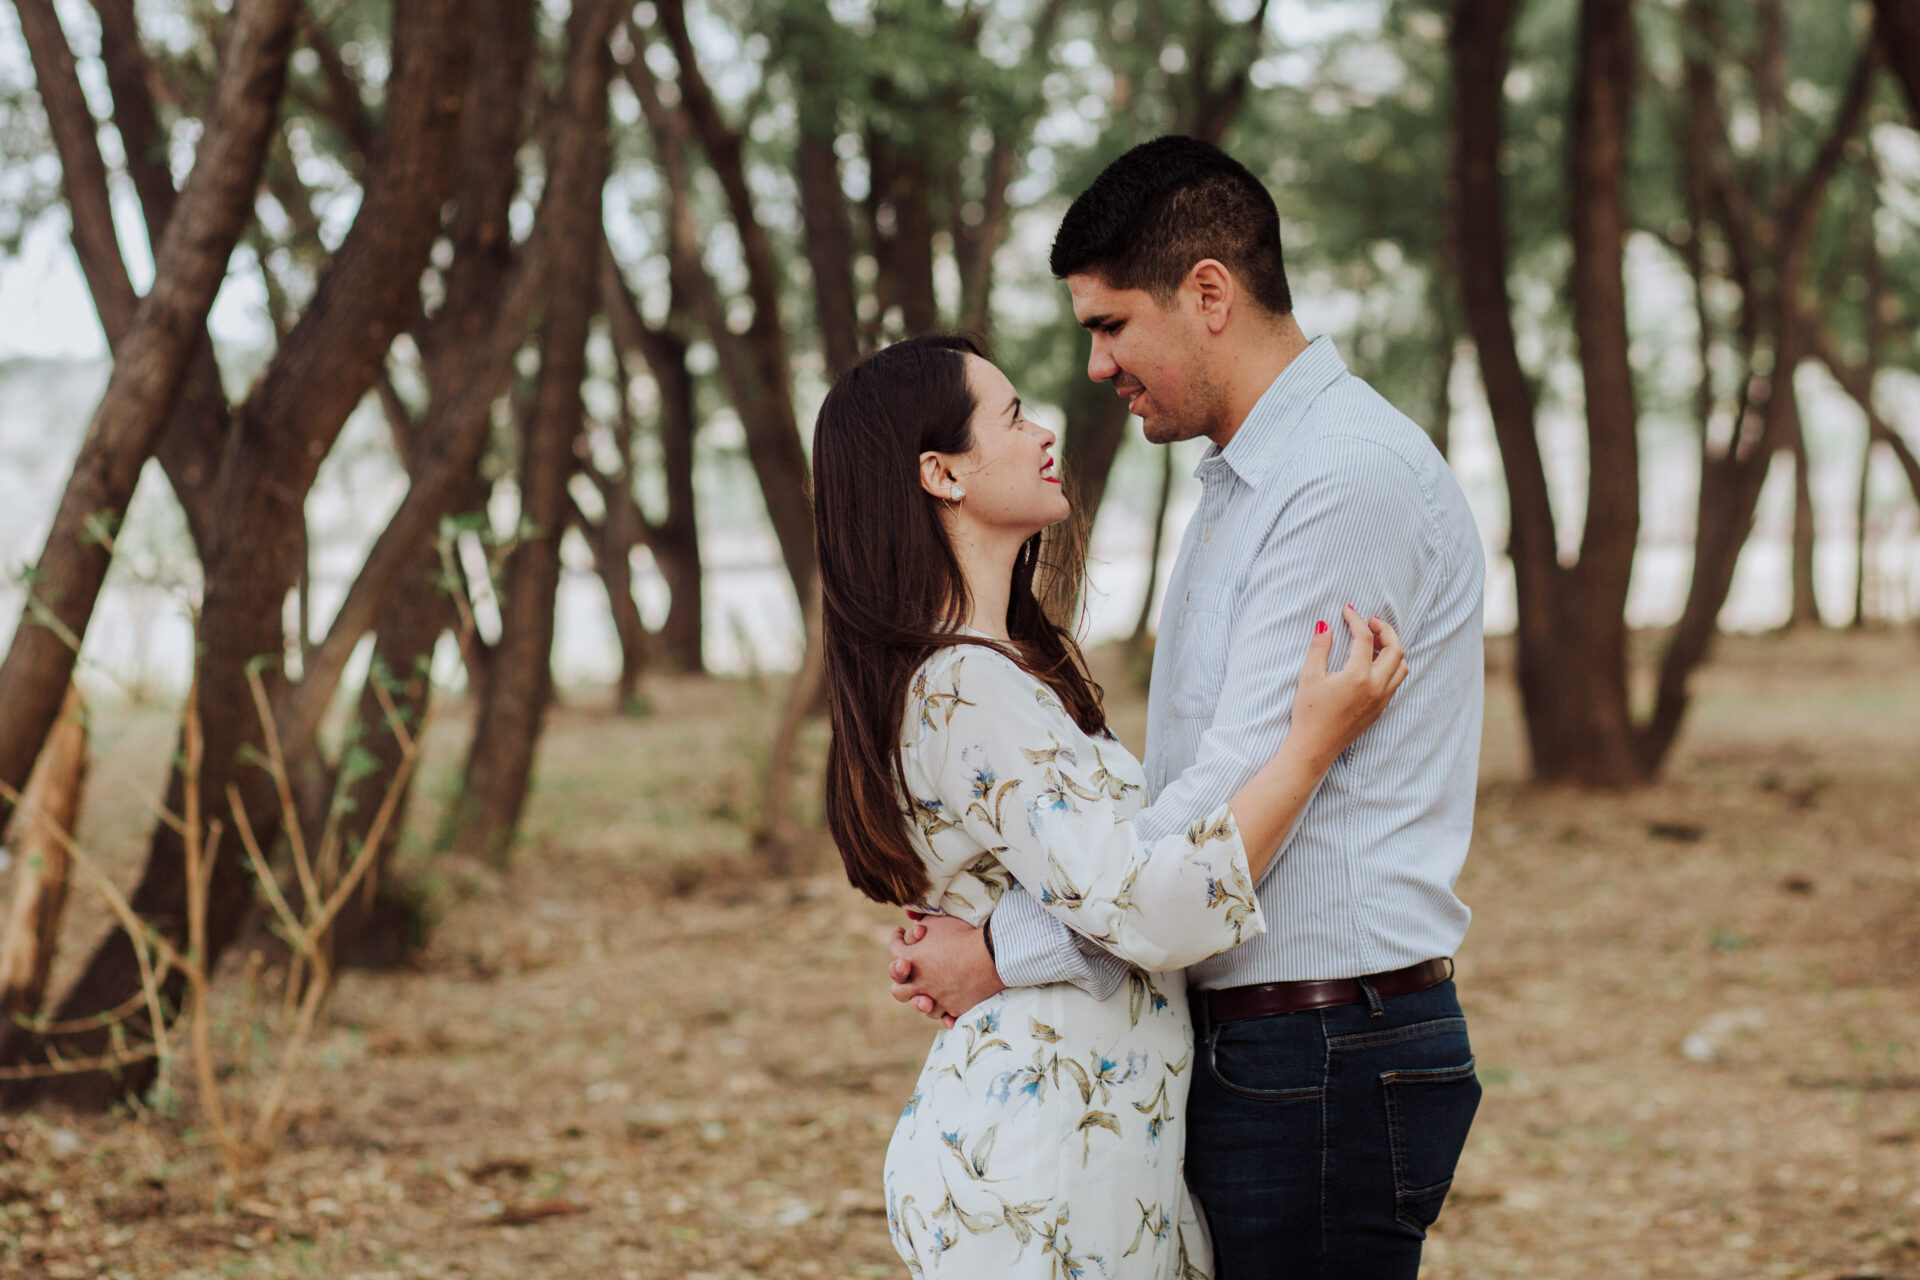 javier_noriega_fotografo_bodas_save_the_date_preboda_zacatecas_wedding_photographer6